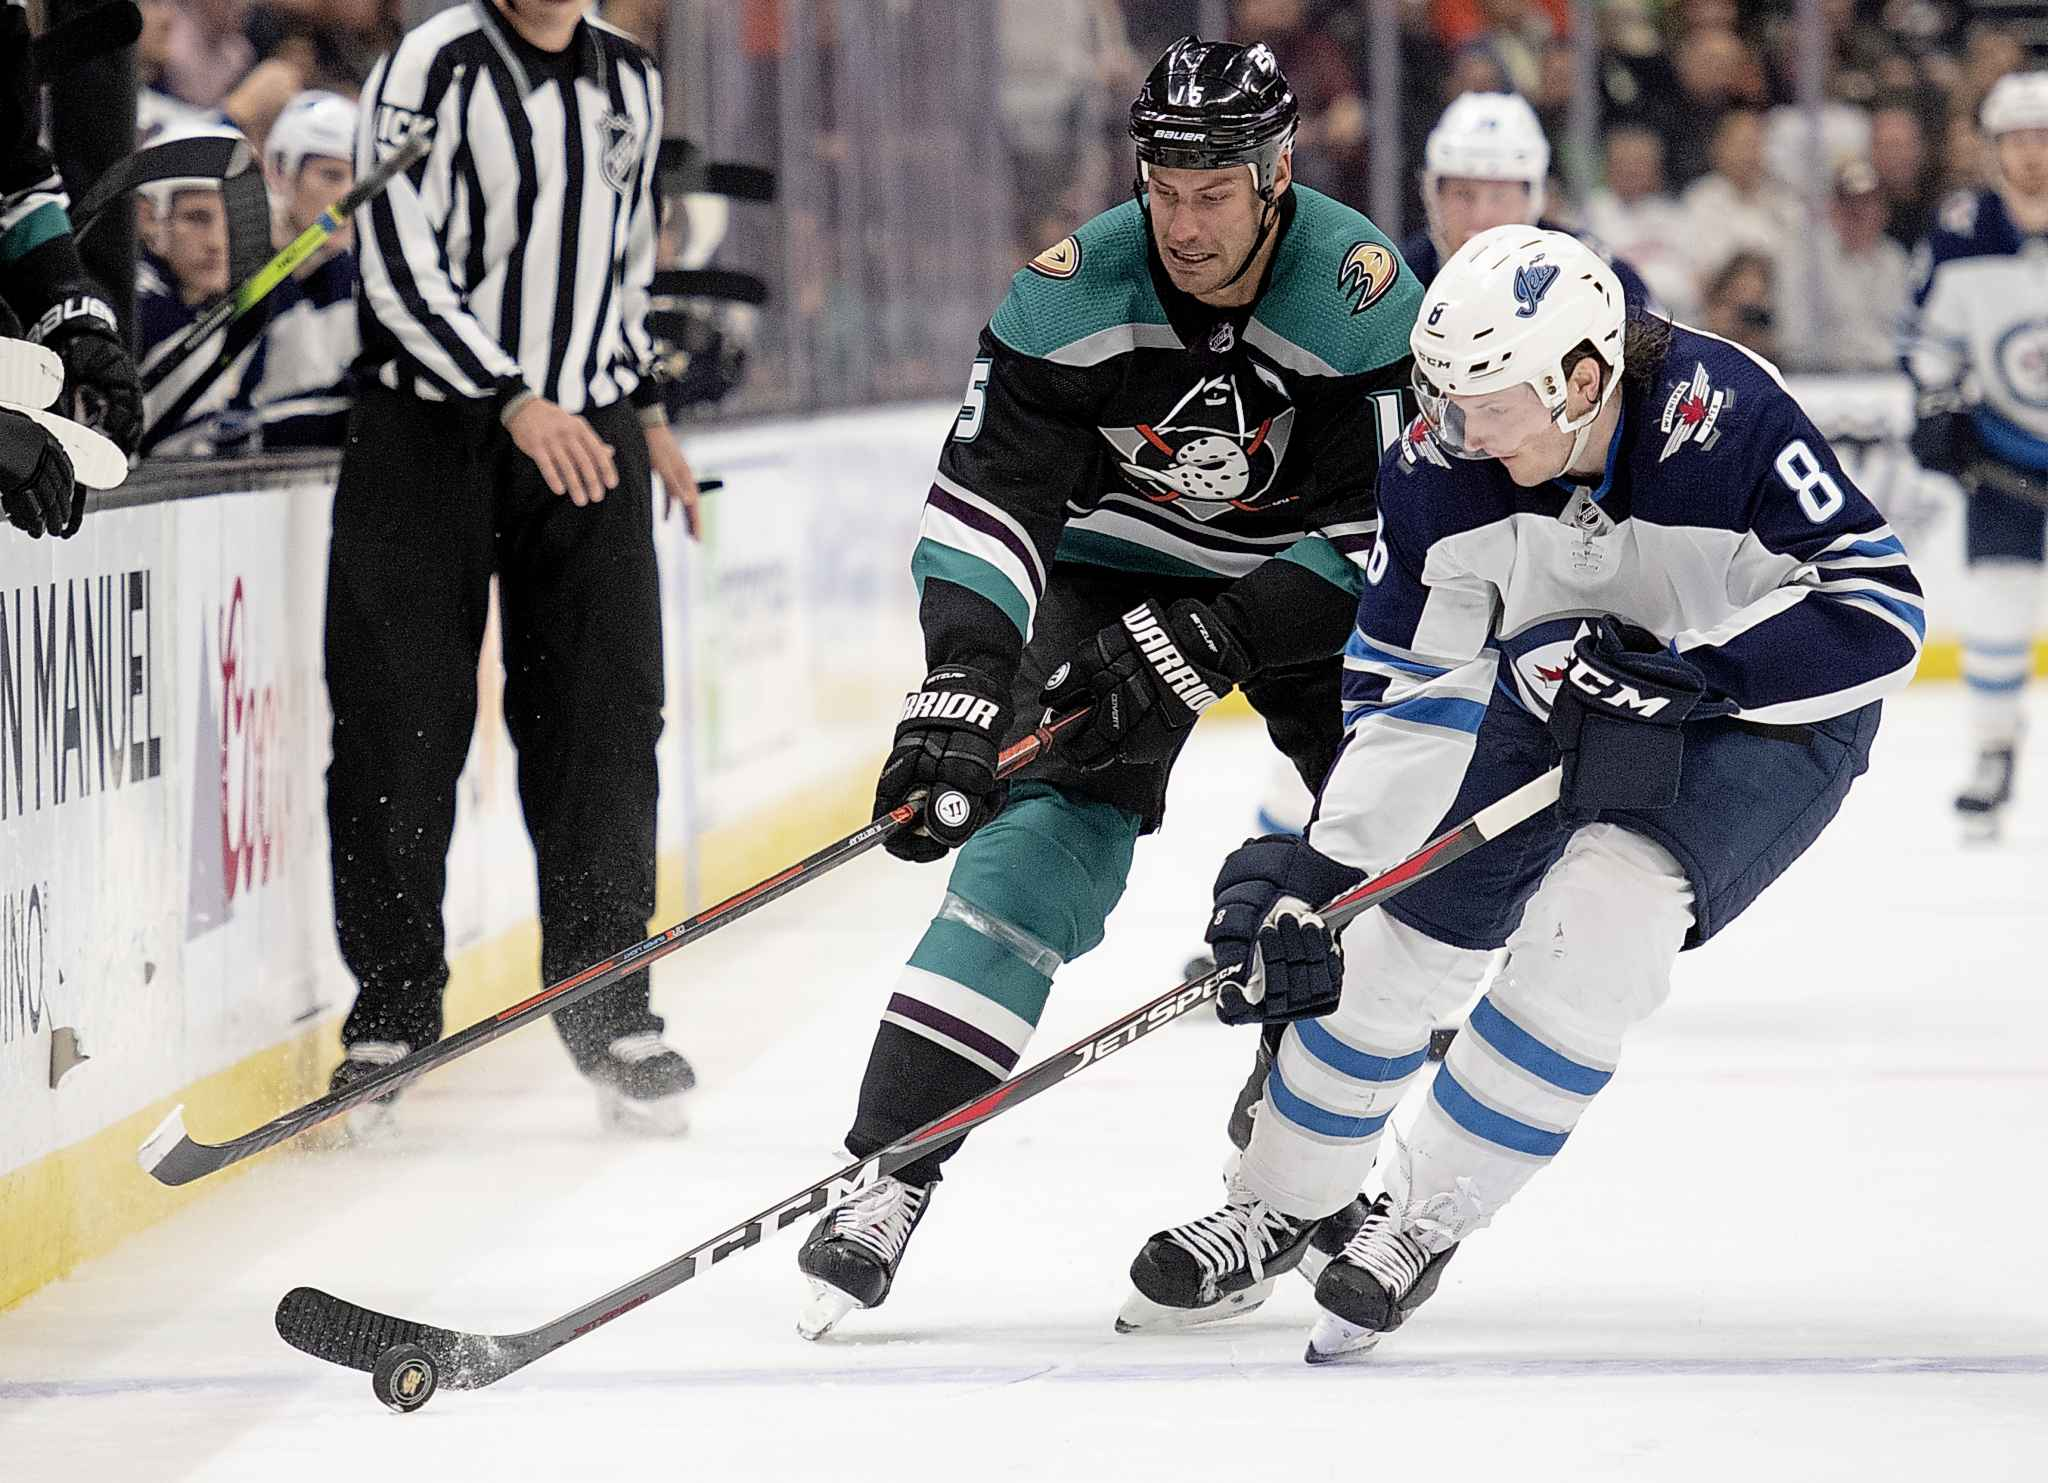 Anaheim Ducks centre Ryan Getzlaf, back, chases Winnipeg Jets defenceman Jacob Trouba for the puck during the second period.